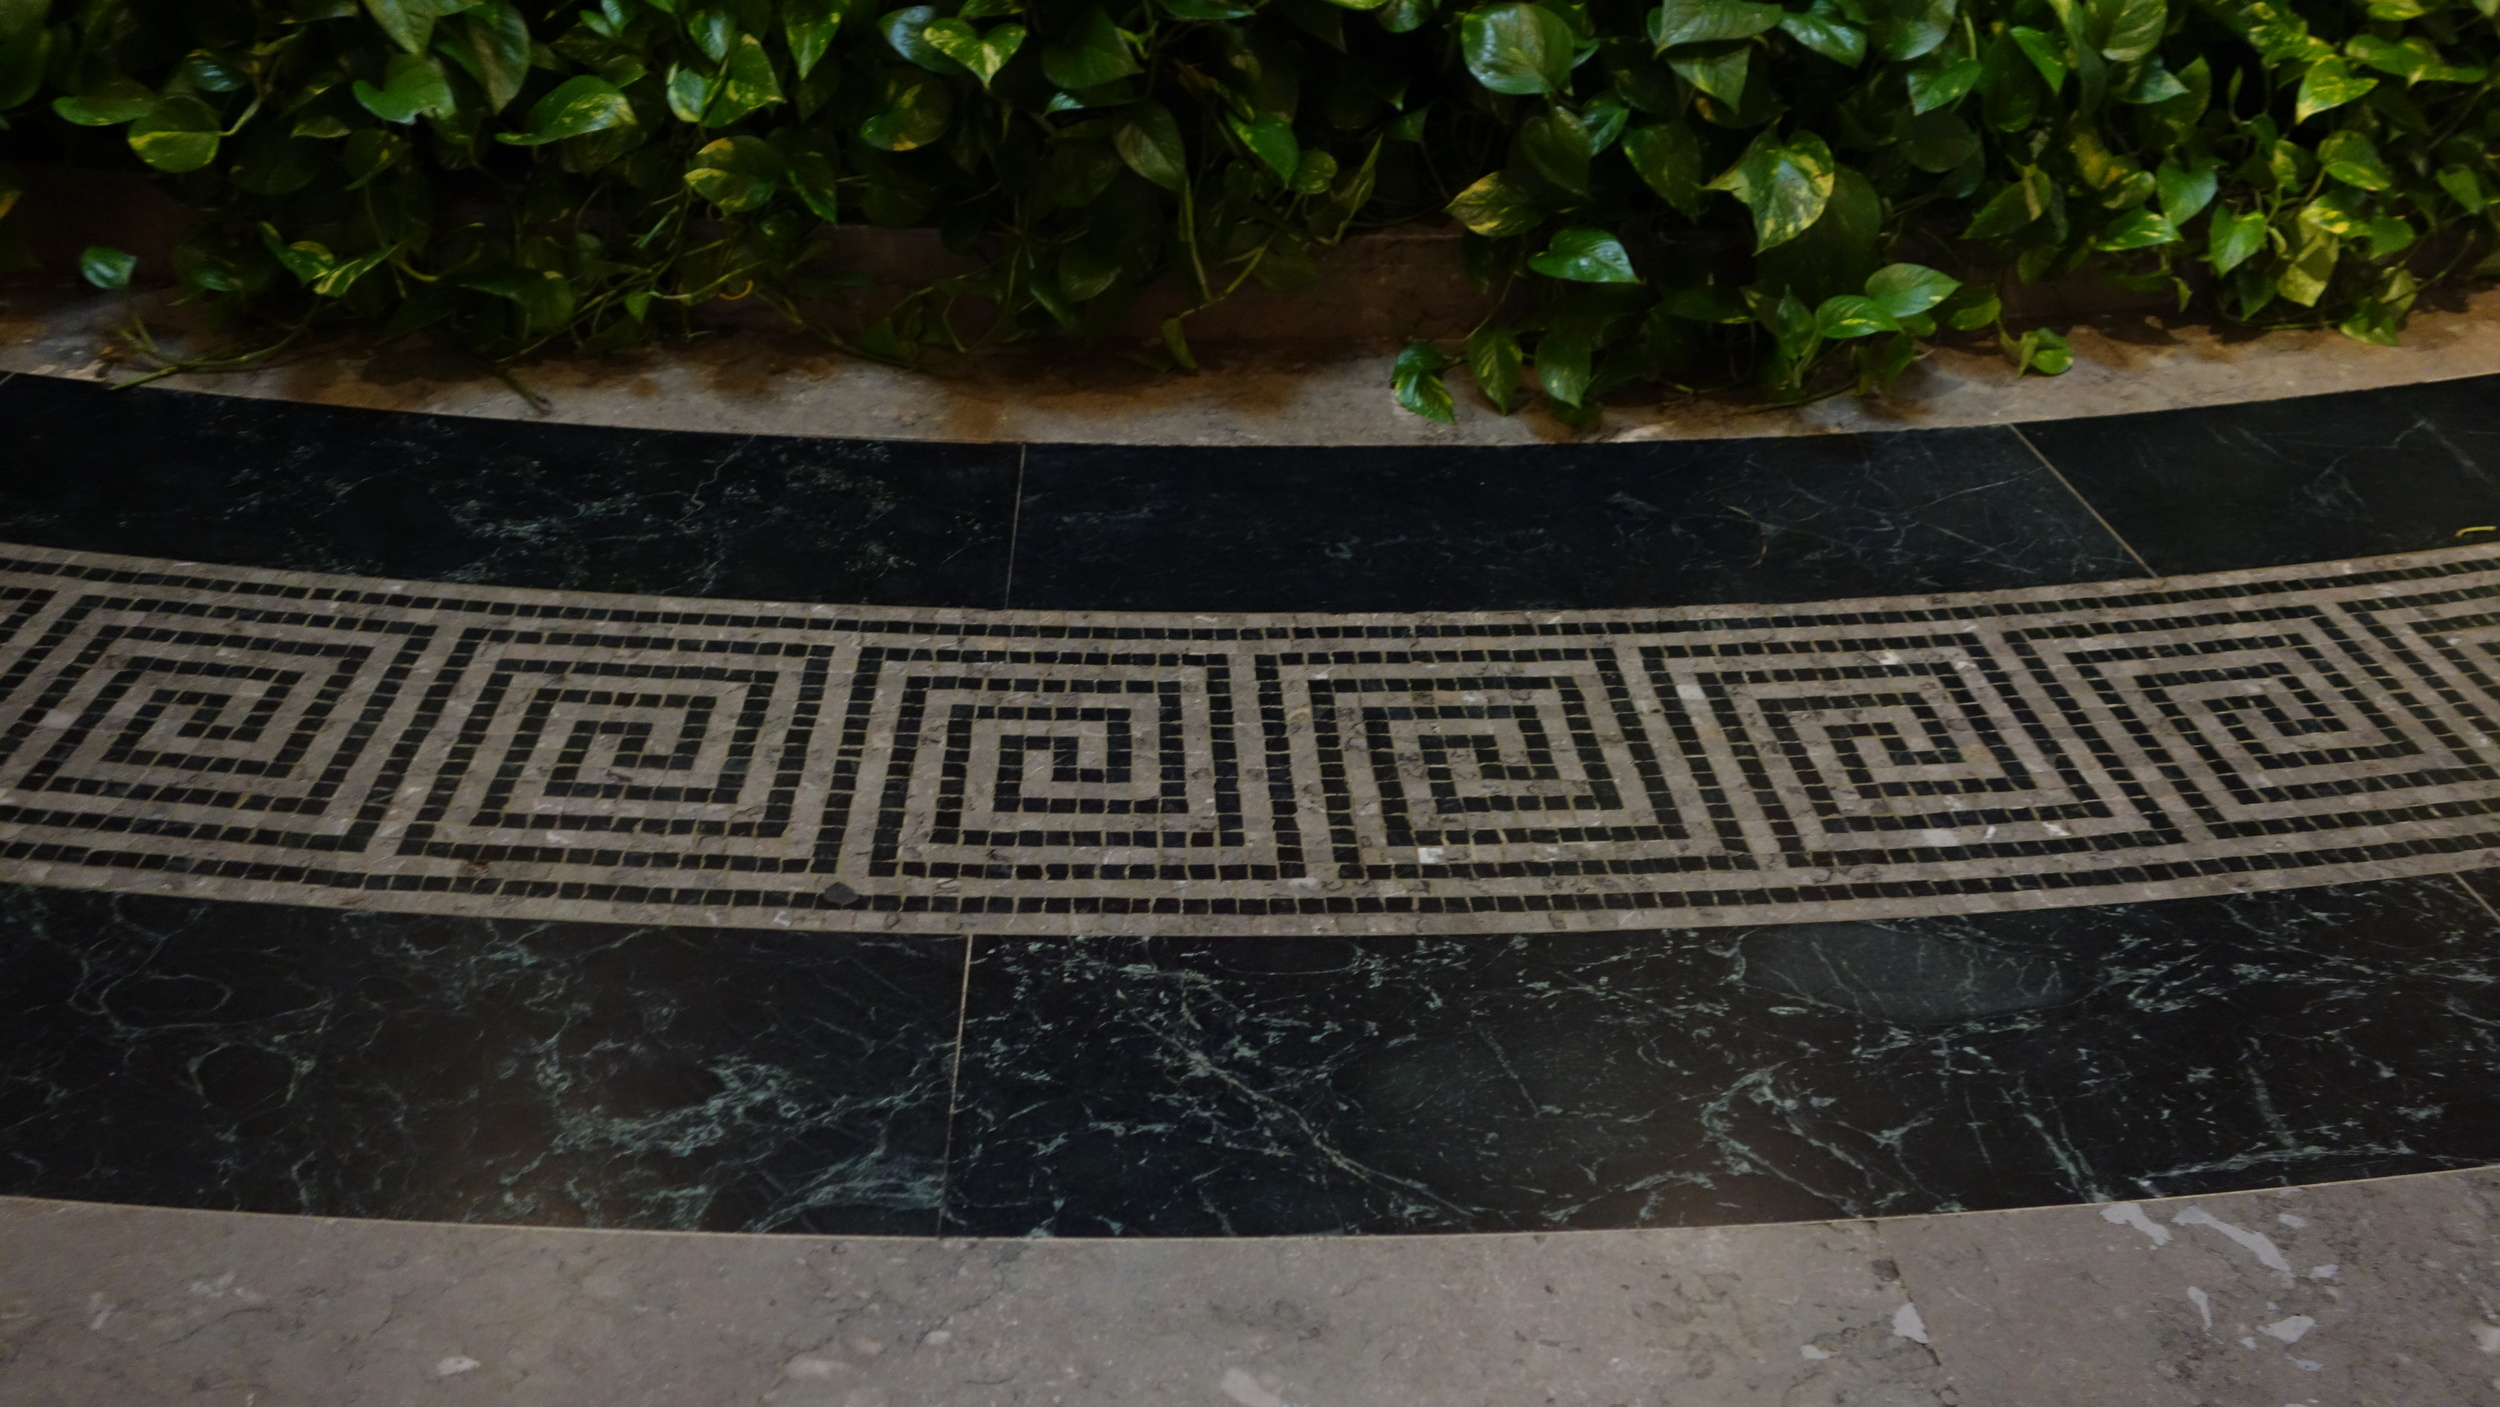 Greek key mosaic in atrium of National Gallery of Art - Doesn't this remind you of a Greek Key tape on the leading edge of a drapery panel?